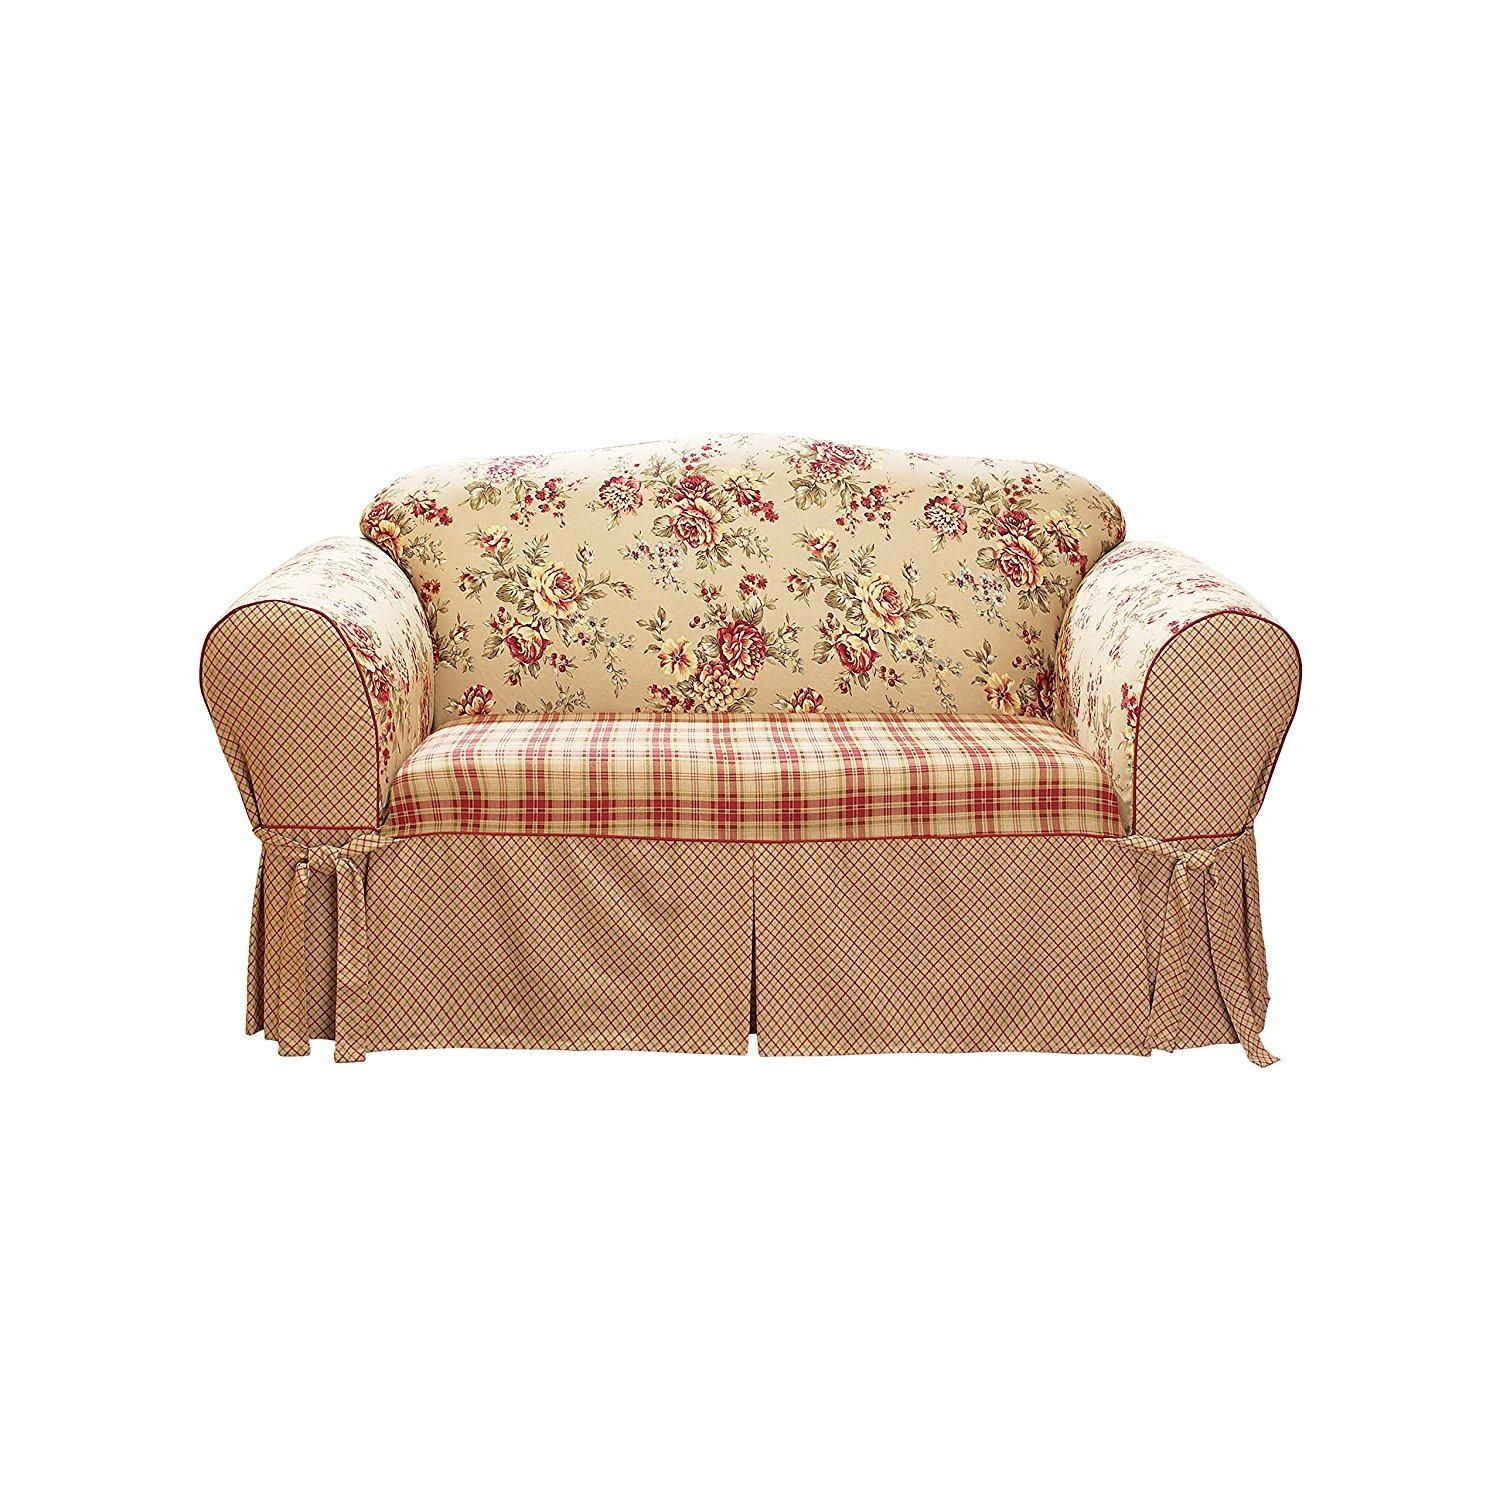 Sofas Center : Httpsae01 Alicdn Comkfhtb1Gnt5Oxxxxxcoaxxxq6X Free Throughout 3 Piece Slipcover Sets (View 11 of 20)